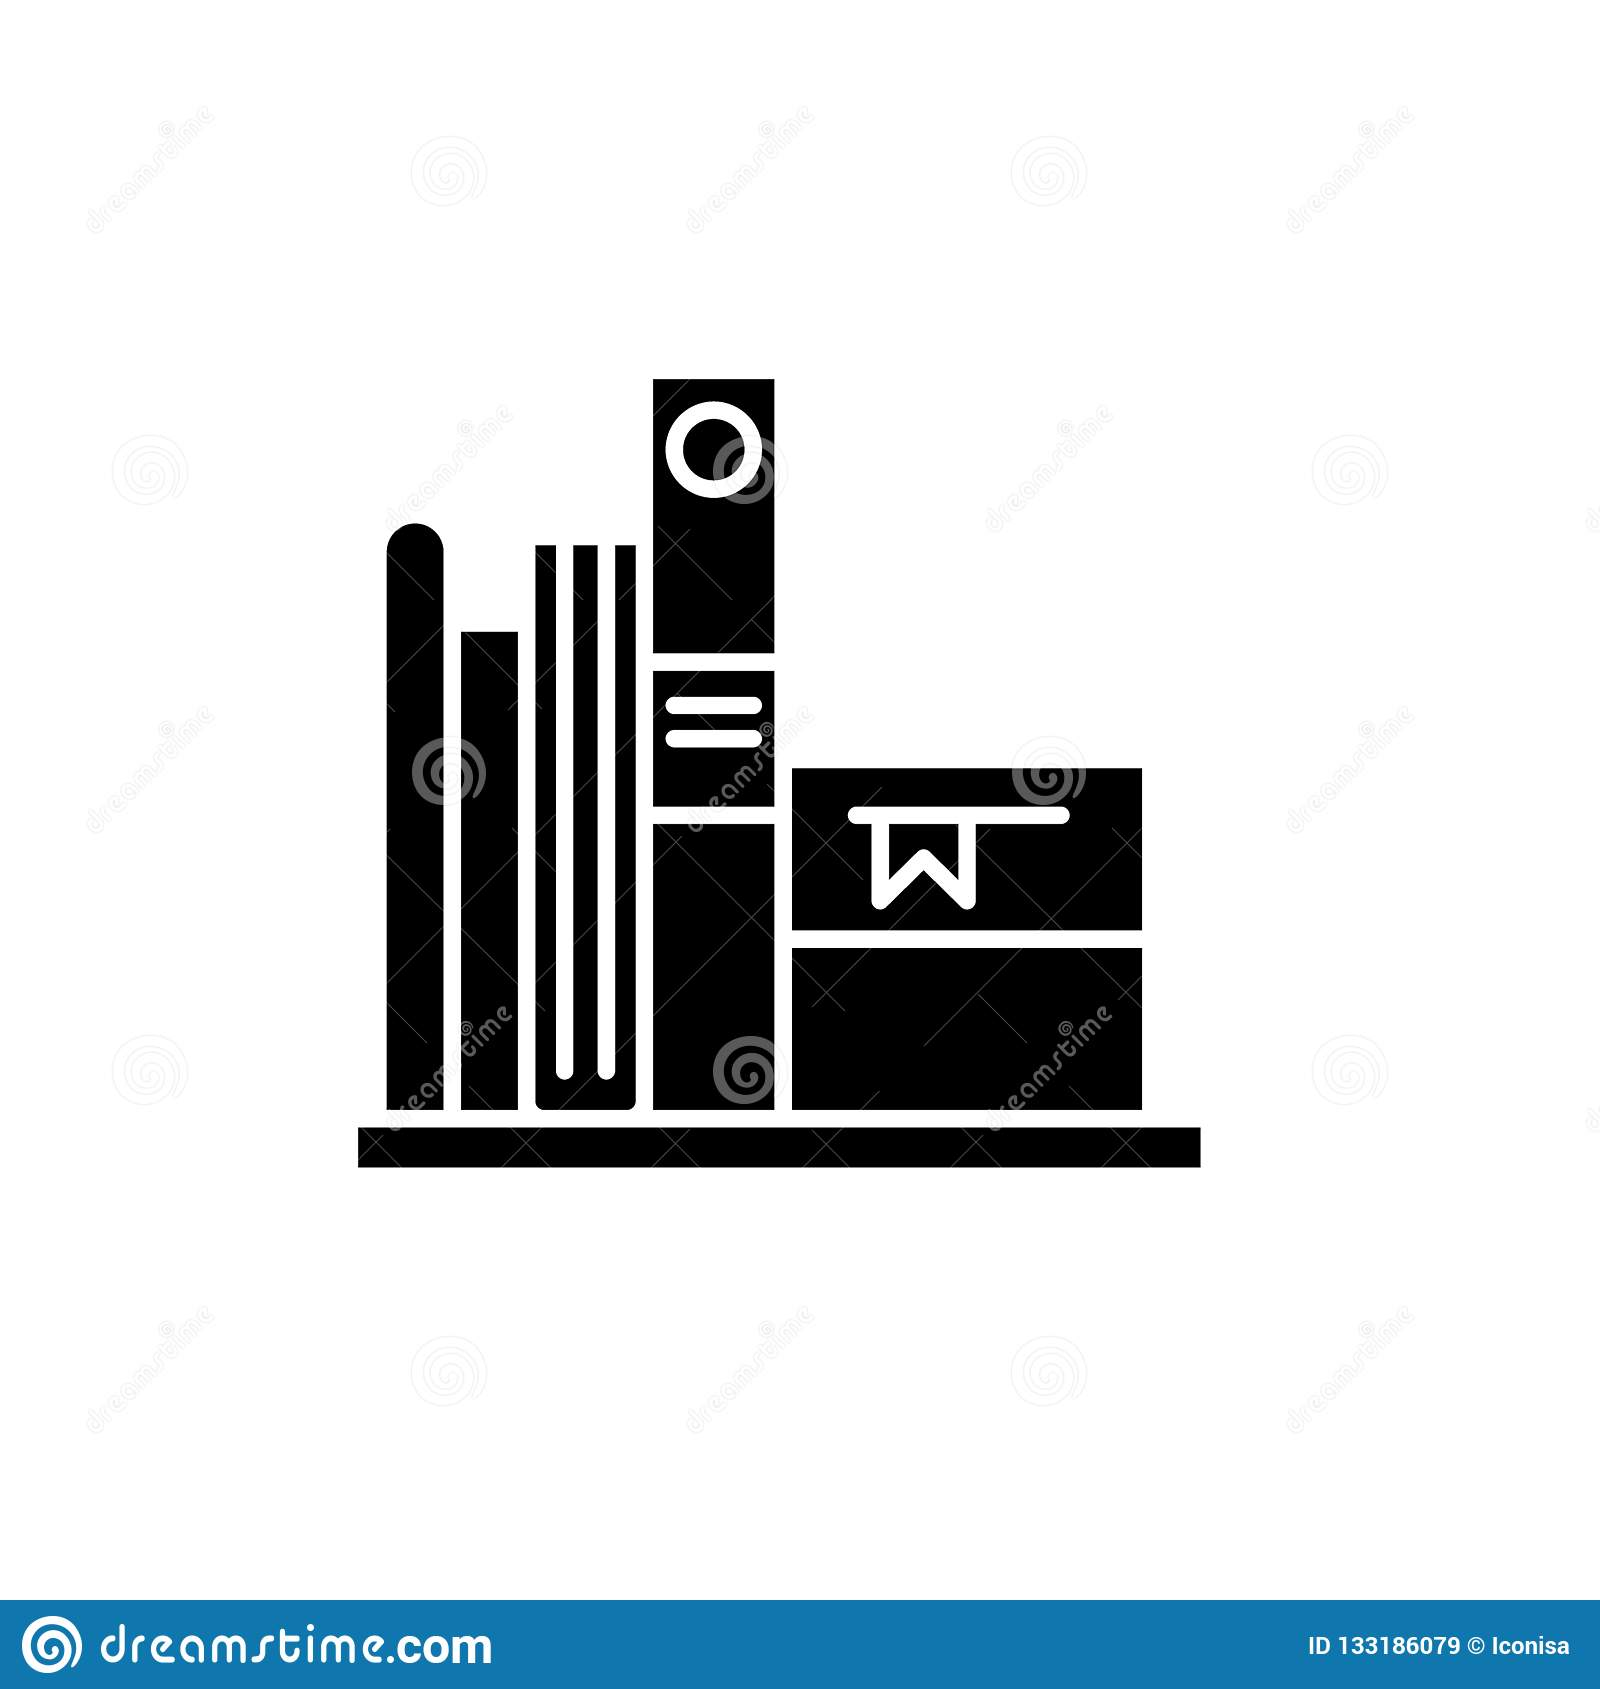 Favorite books black icon, vector sign on isolated background. Favorite books concept symbol, illustration